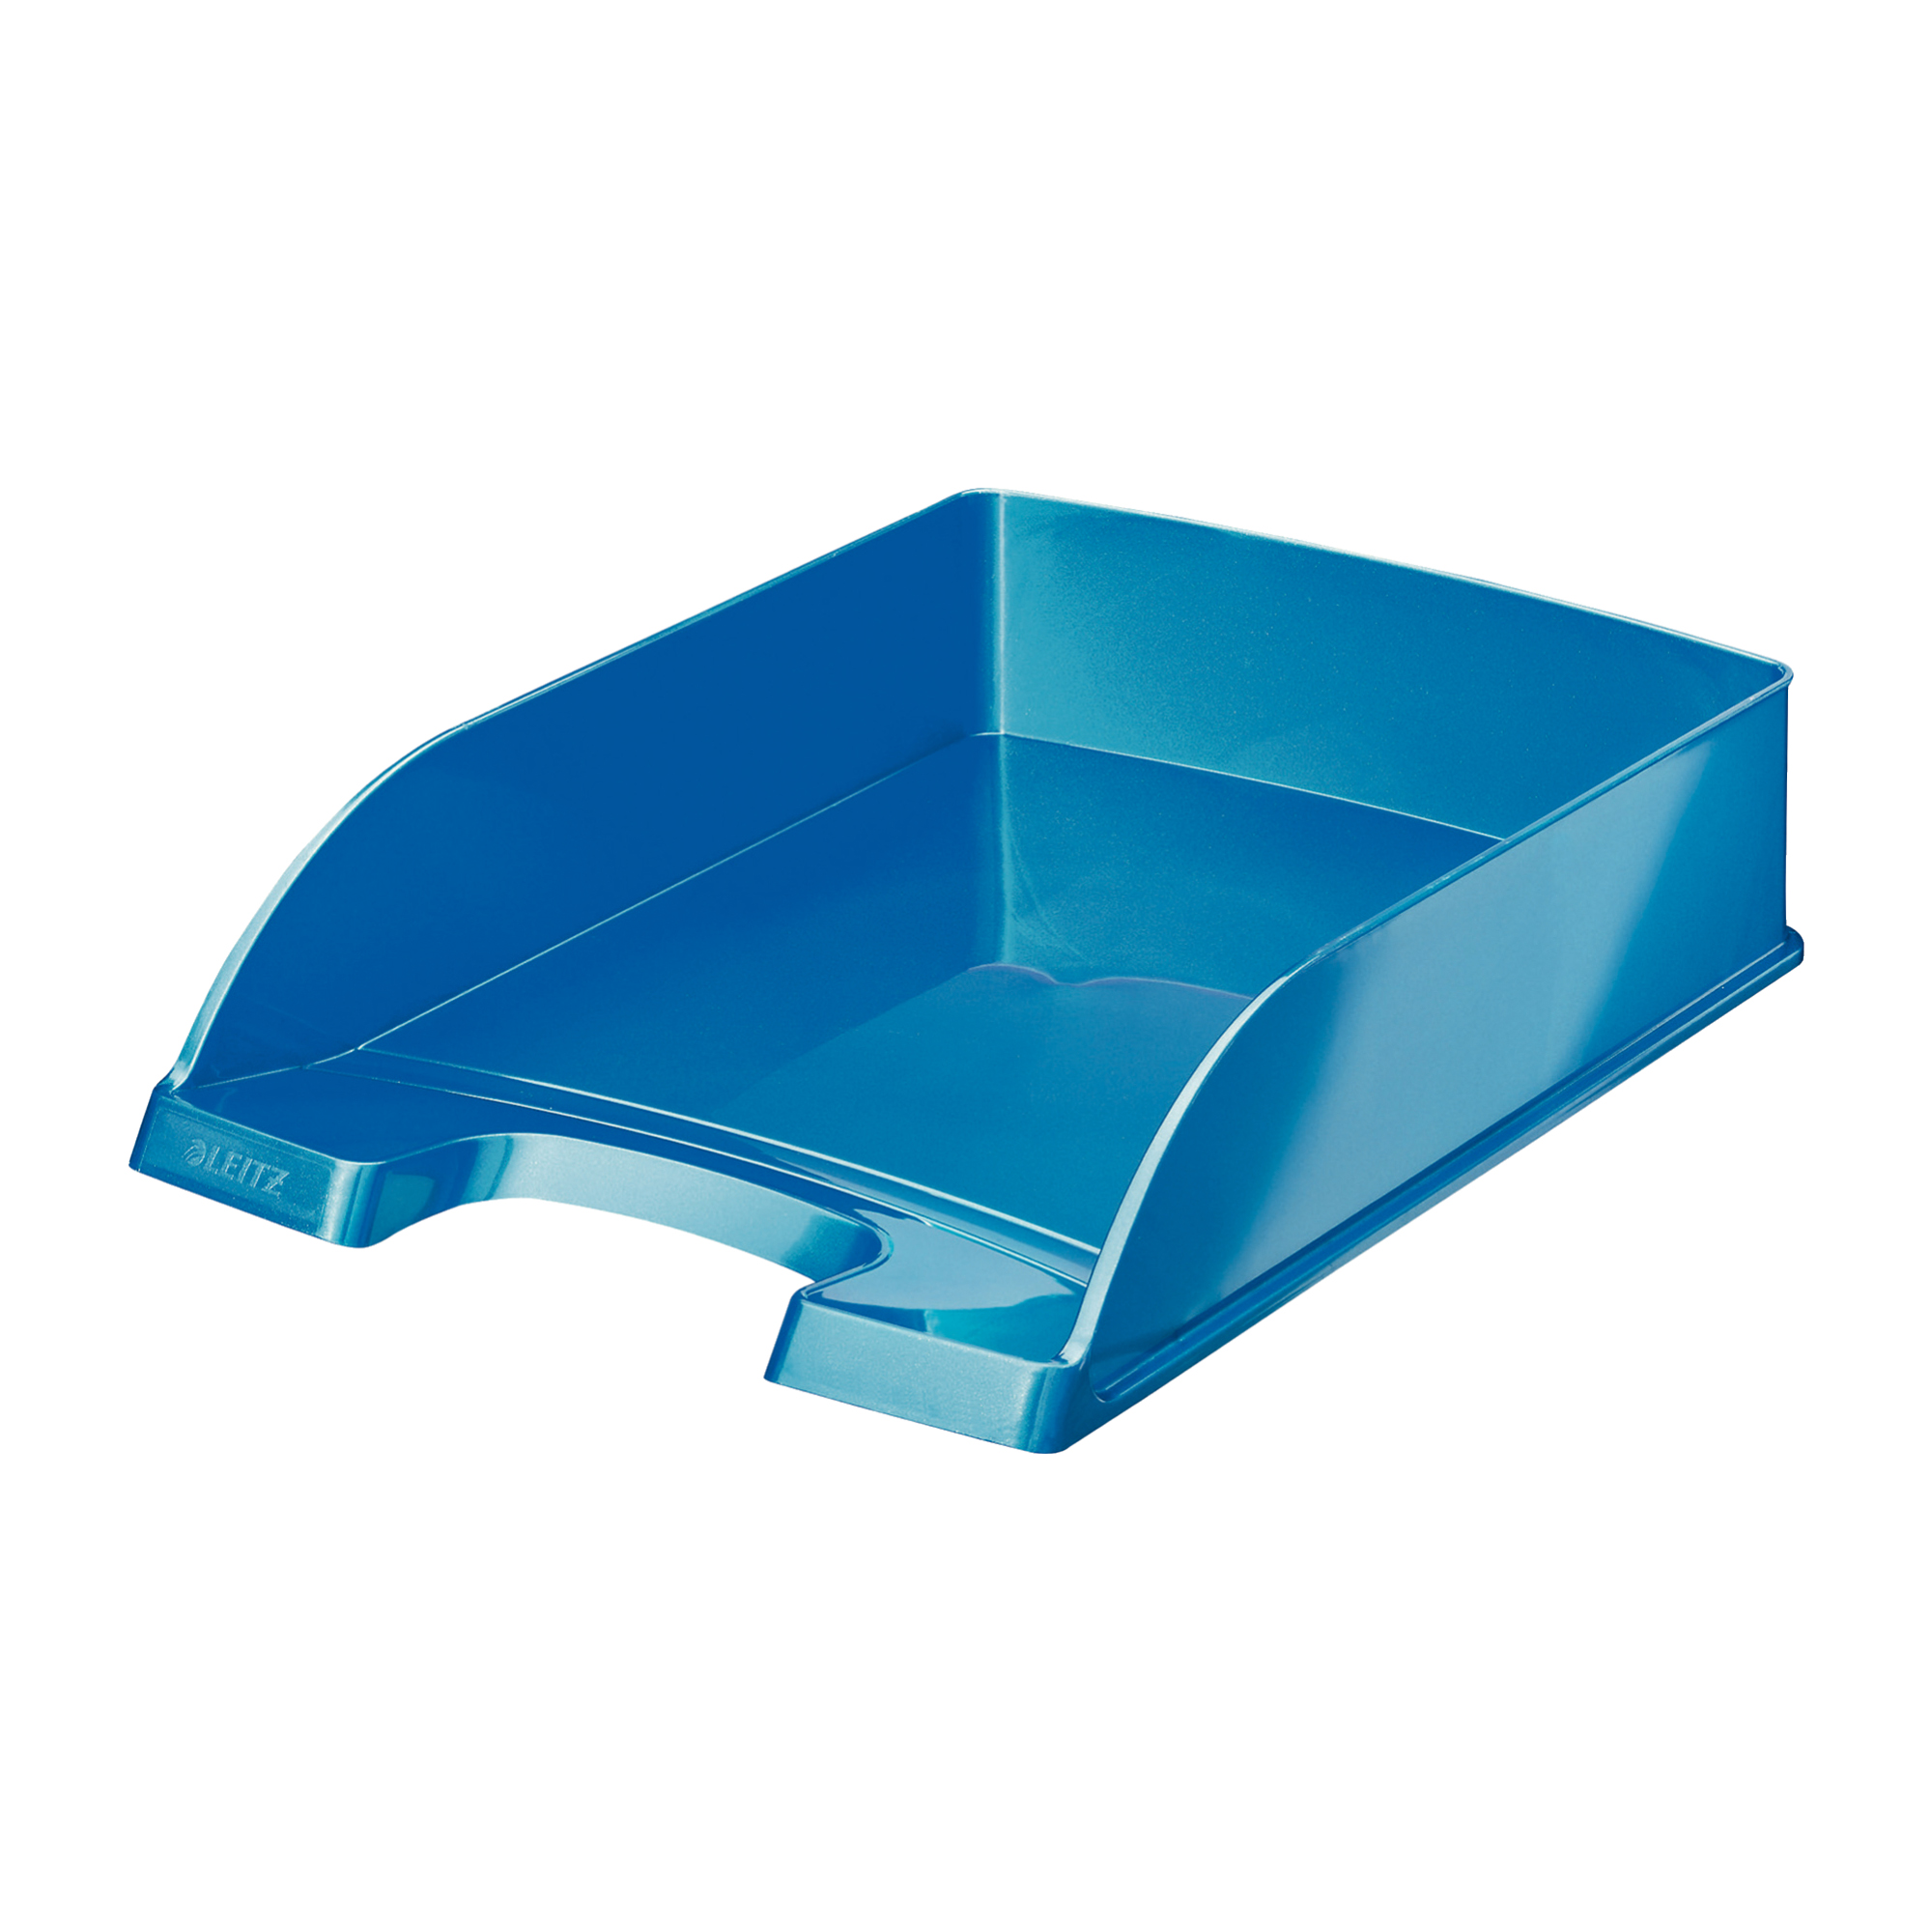 Letter Trays Leitz WOW Letter Tray Stackable Glossy Metallic W245xD380xH70mm Met Blue Ref 52263036